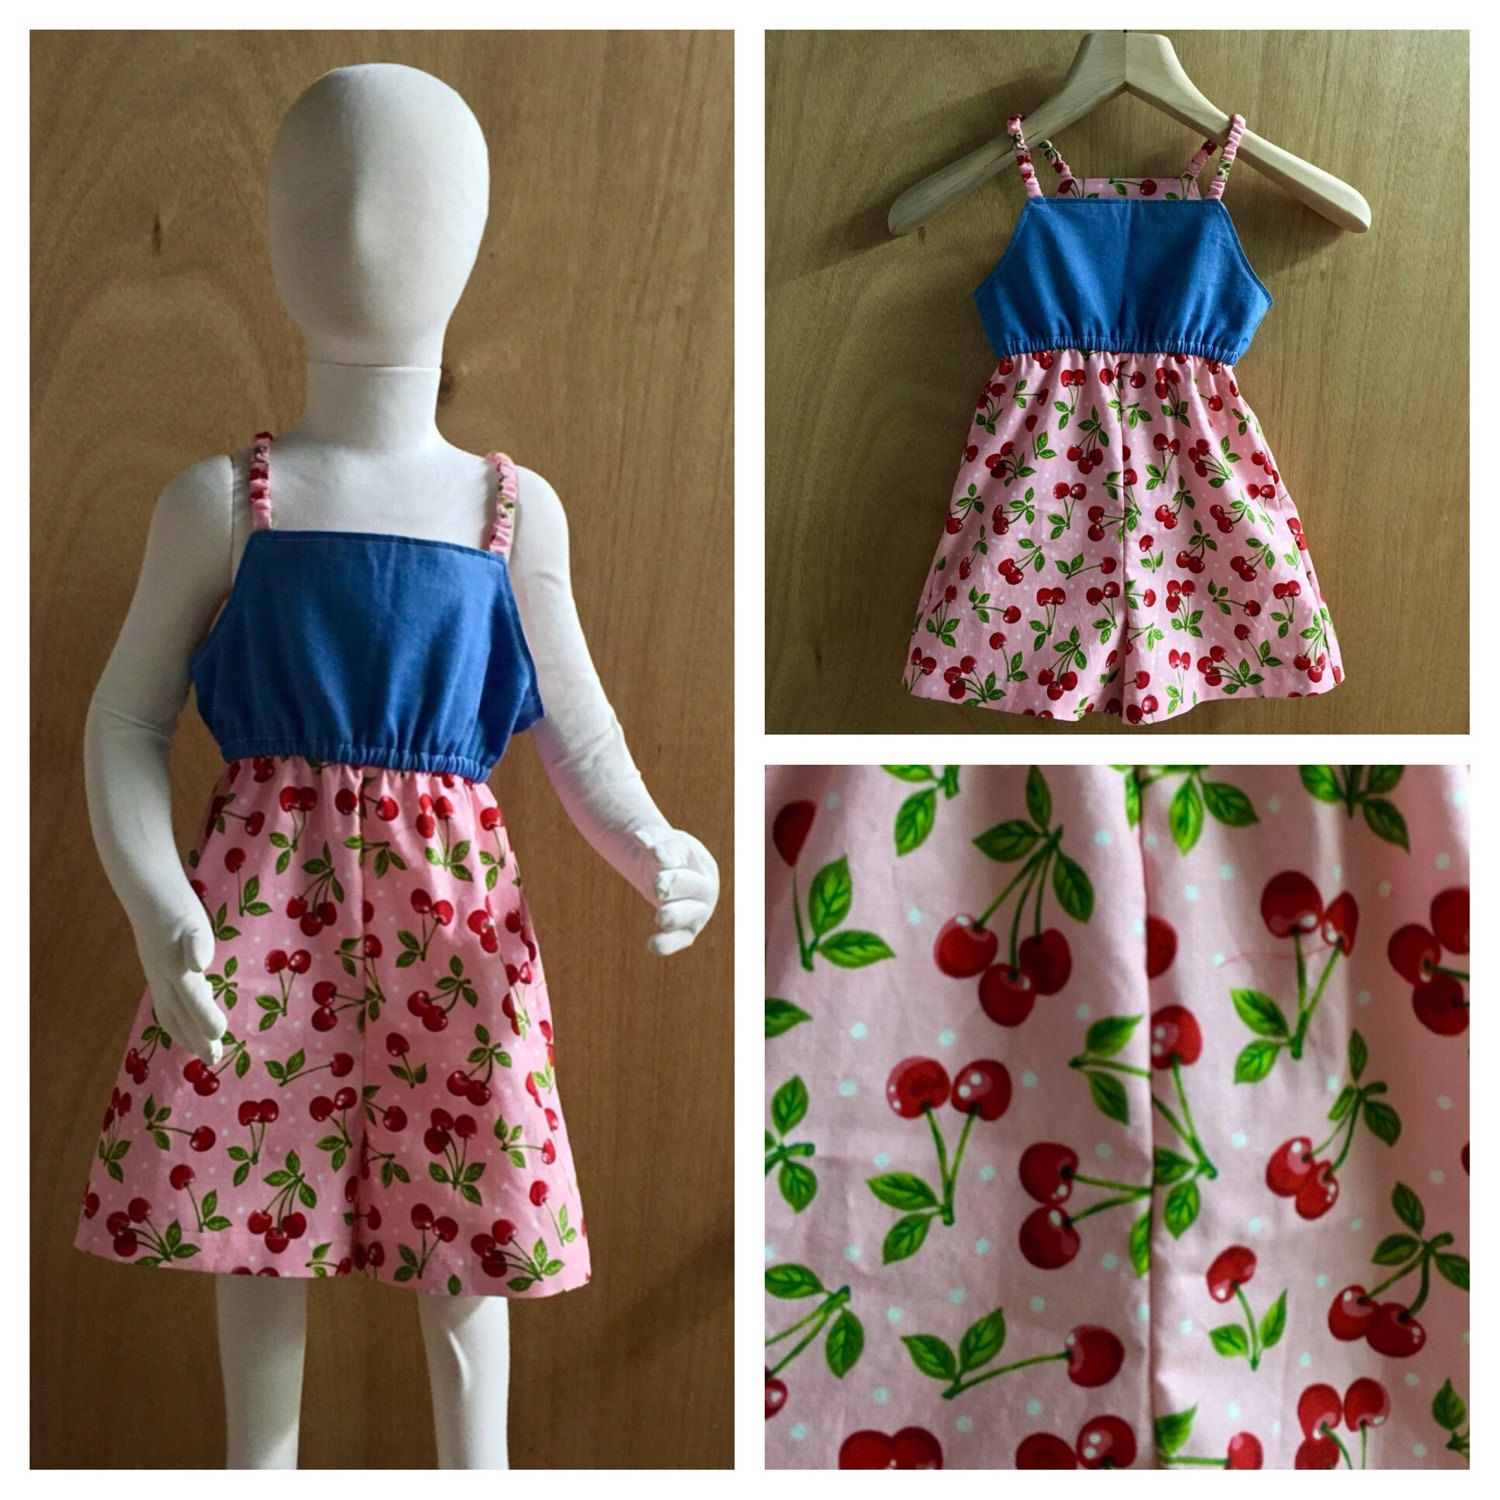 Cheery Cherries!  This denim and cotton romper is simple and fun! Size 5